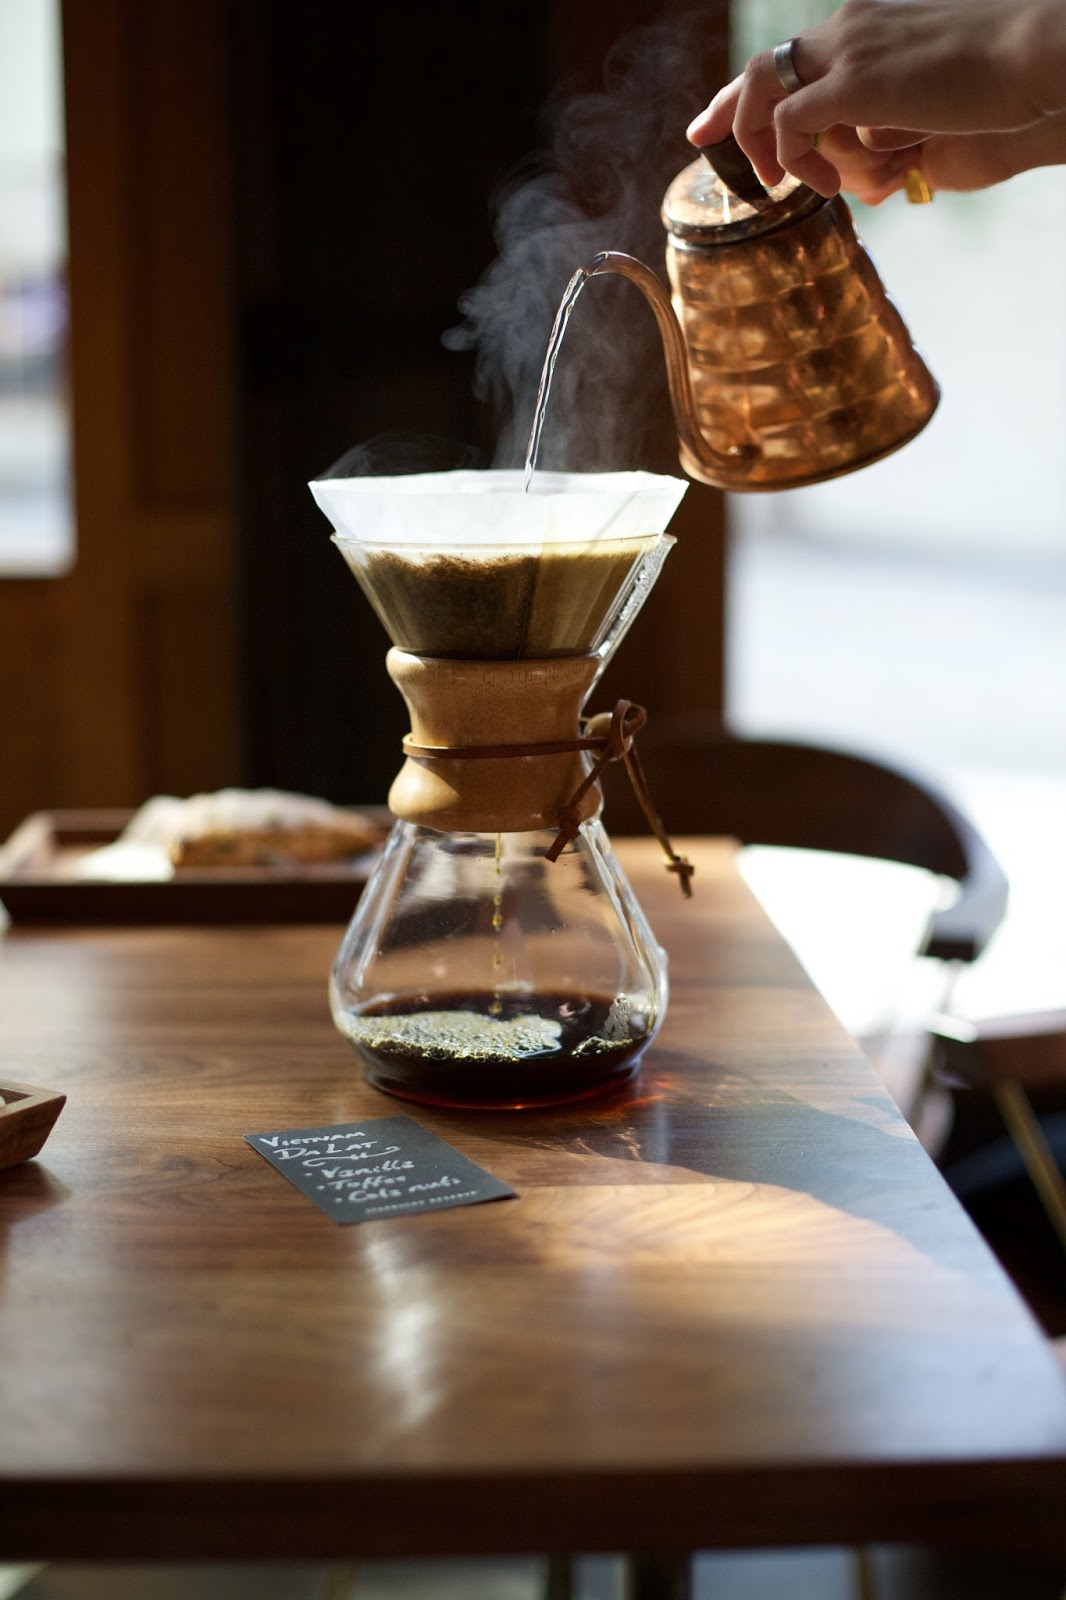 Starbucks Coffee Chemex brewing method